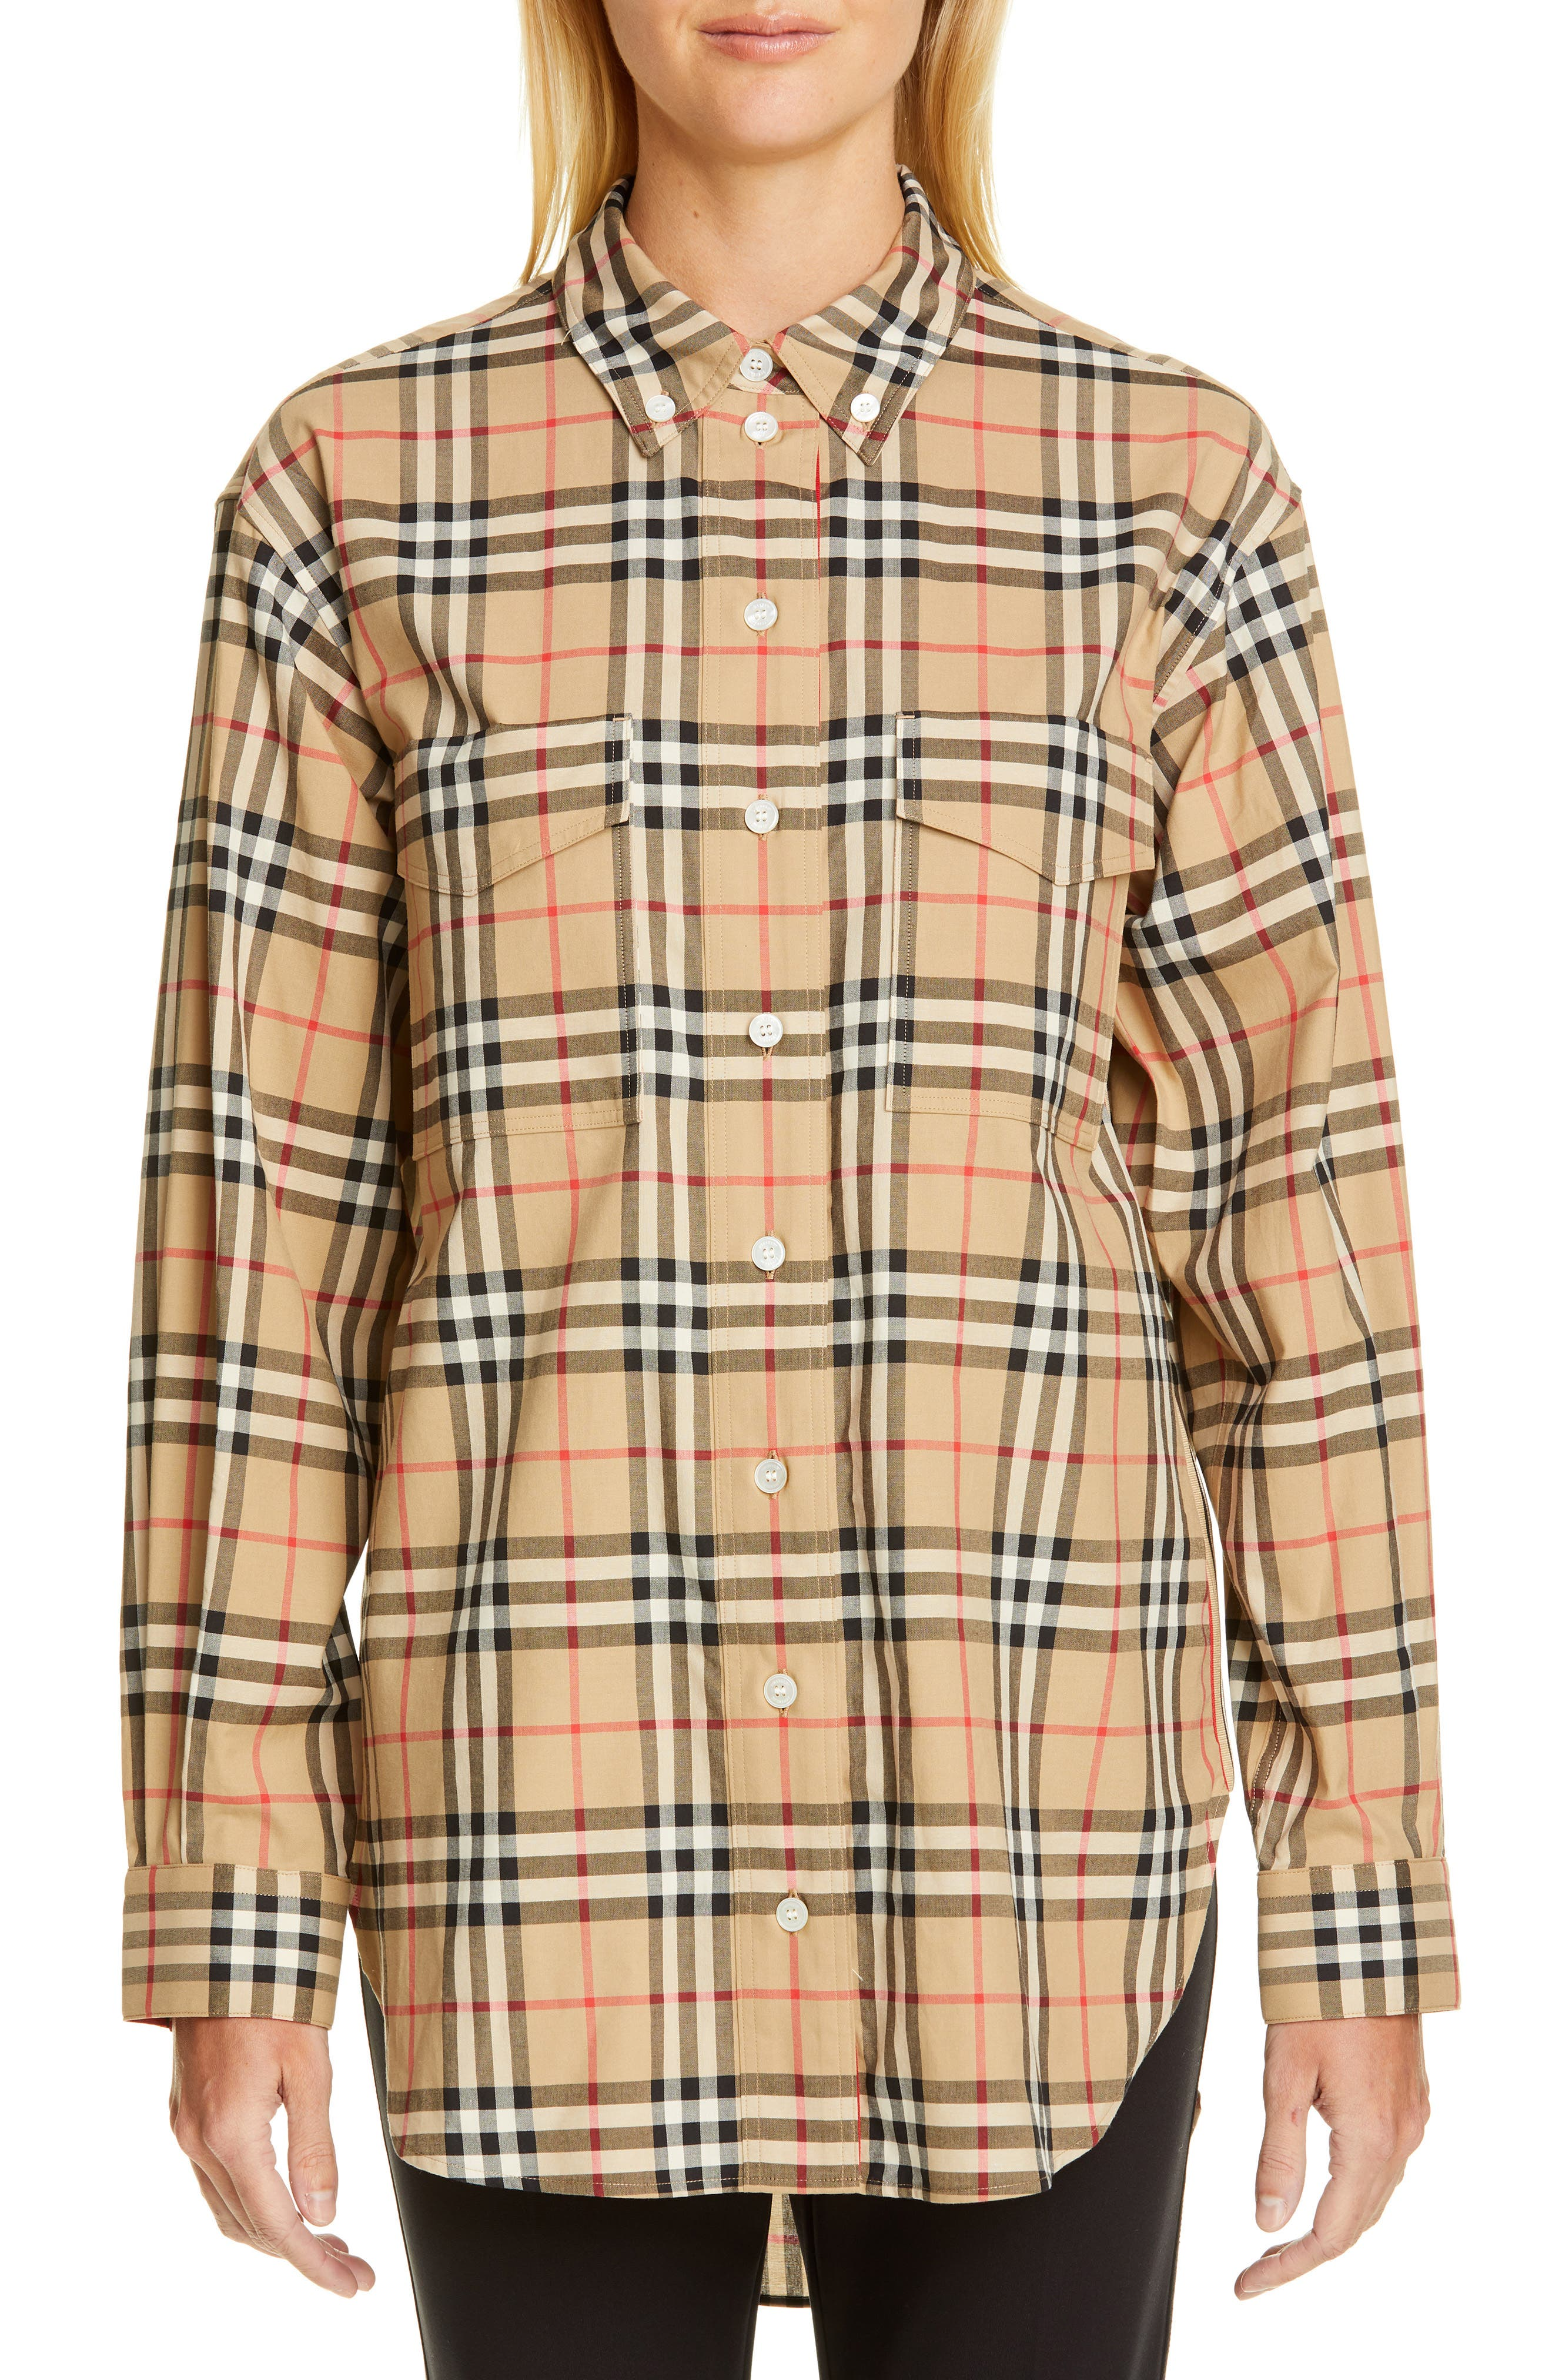 BURBERRY Turnstone Check Shirt, Main, color, ARCHIVE BEIGE IP CHK